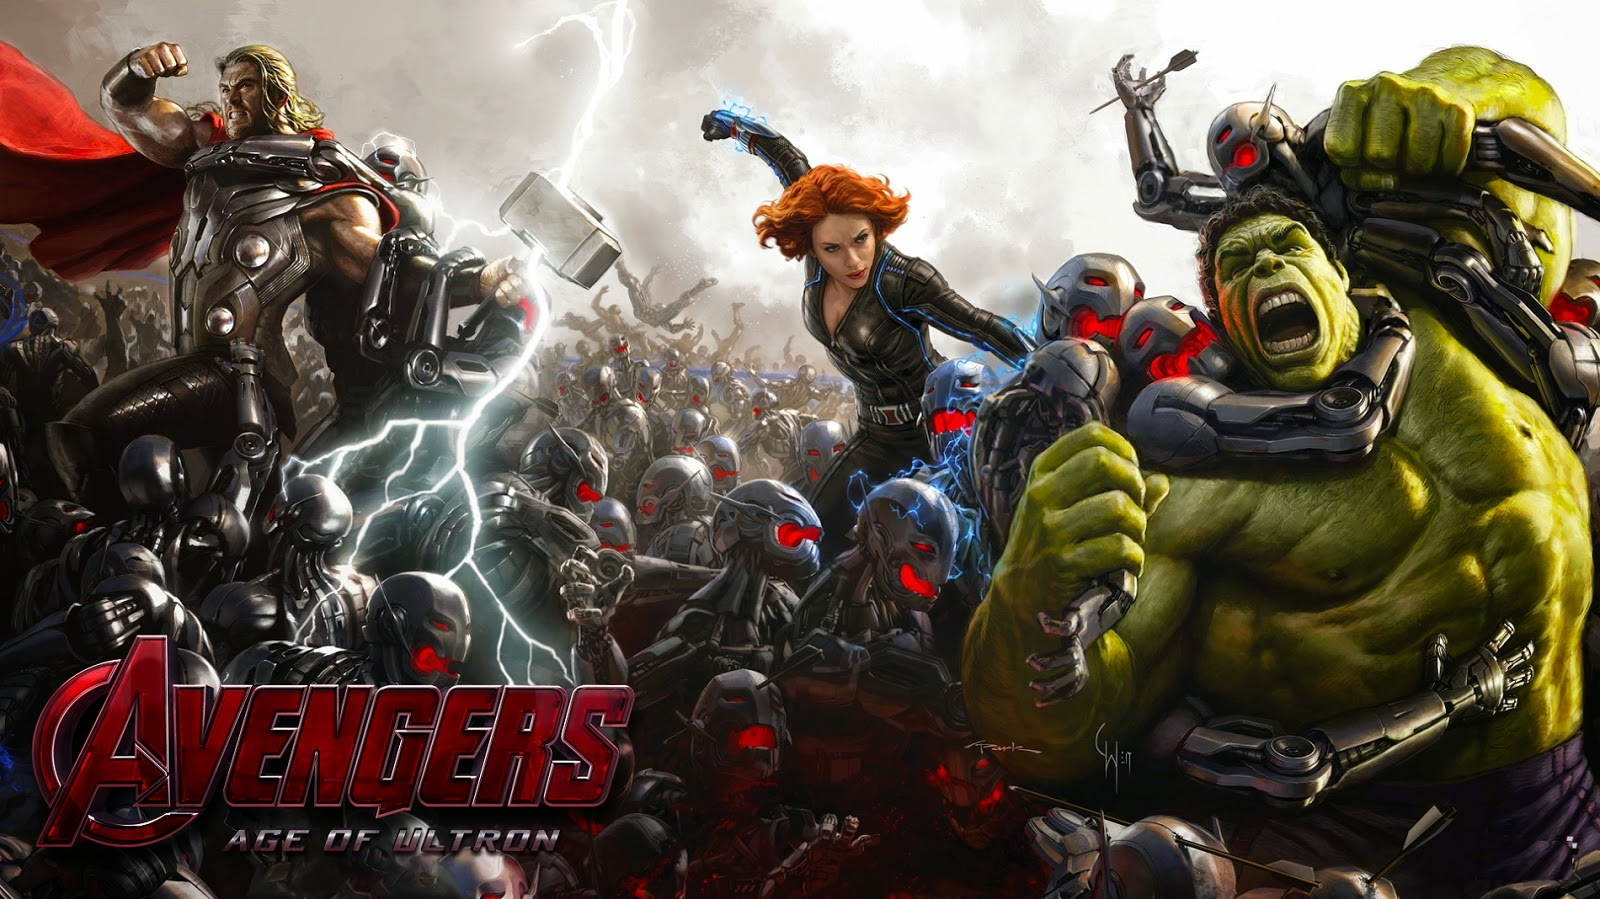 Avenger Age of Ultron Cast And Crew Avengers 2 Age of Ultron